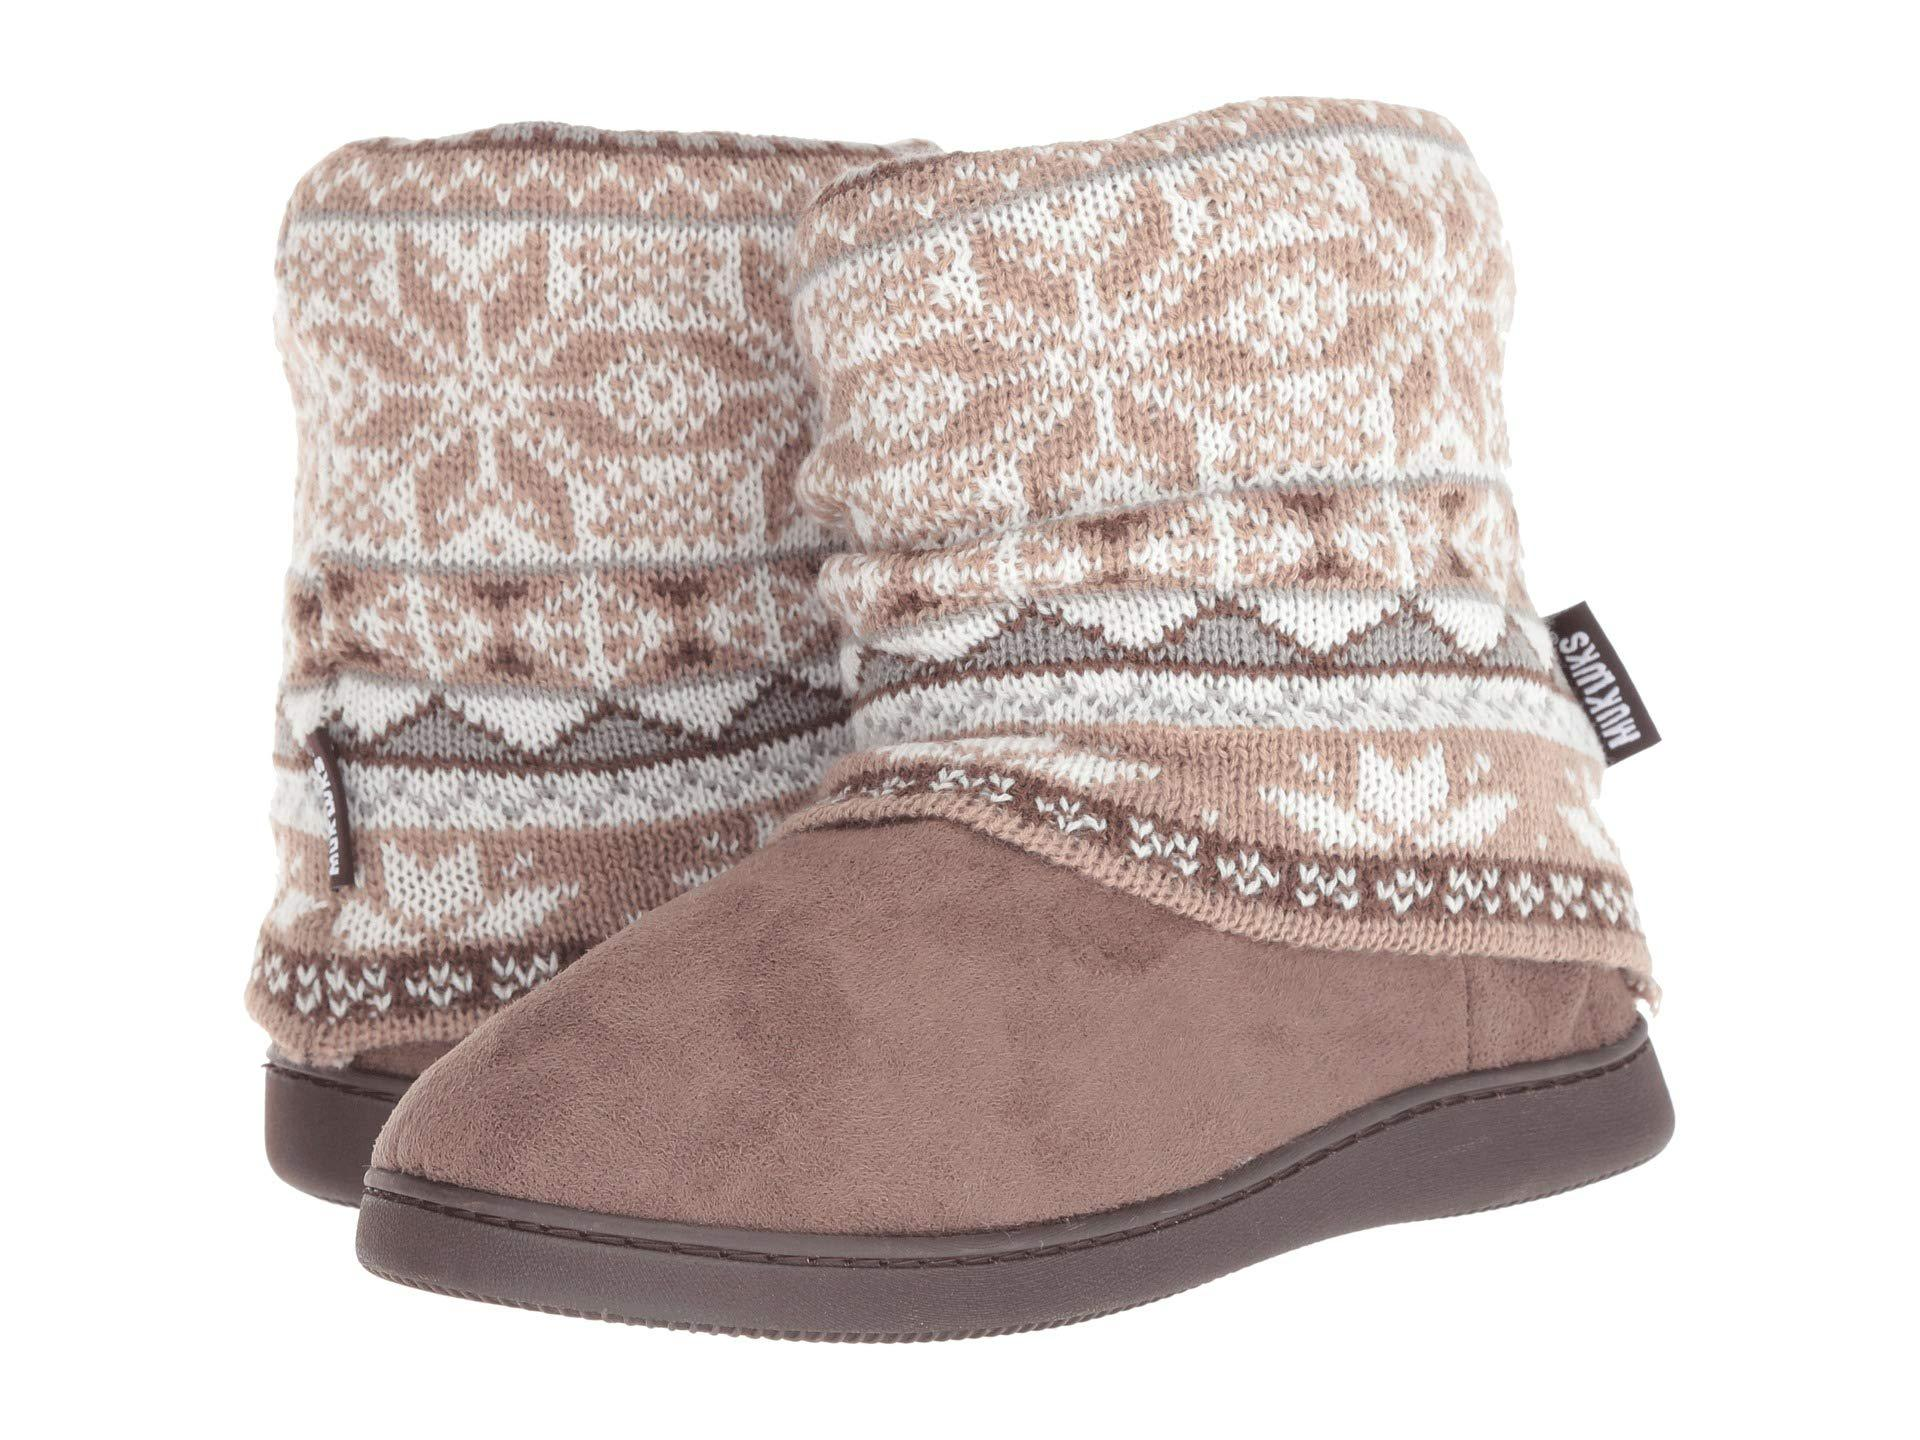 510cd553b0e2 Muk Luks. Women s Rosie